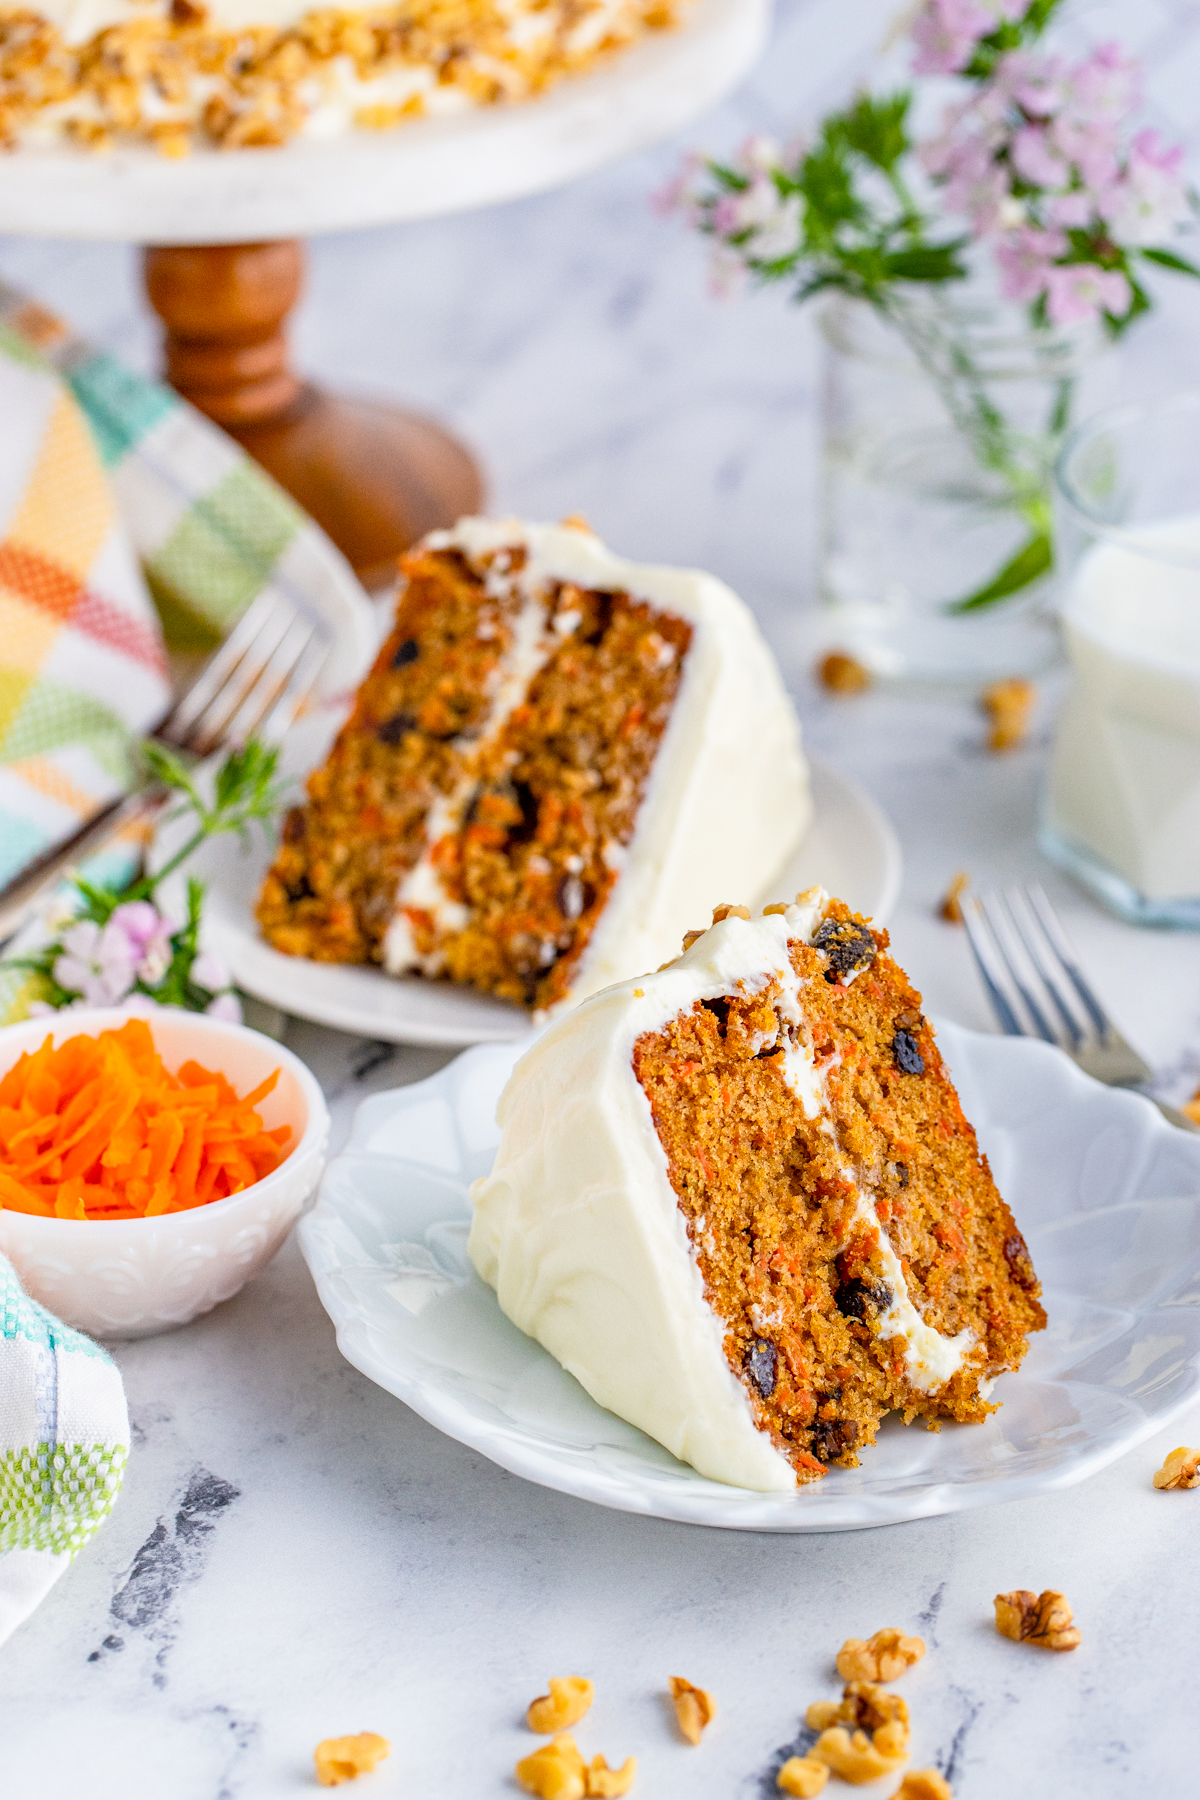 Two slices of Carrot Cake on white plates